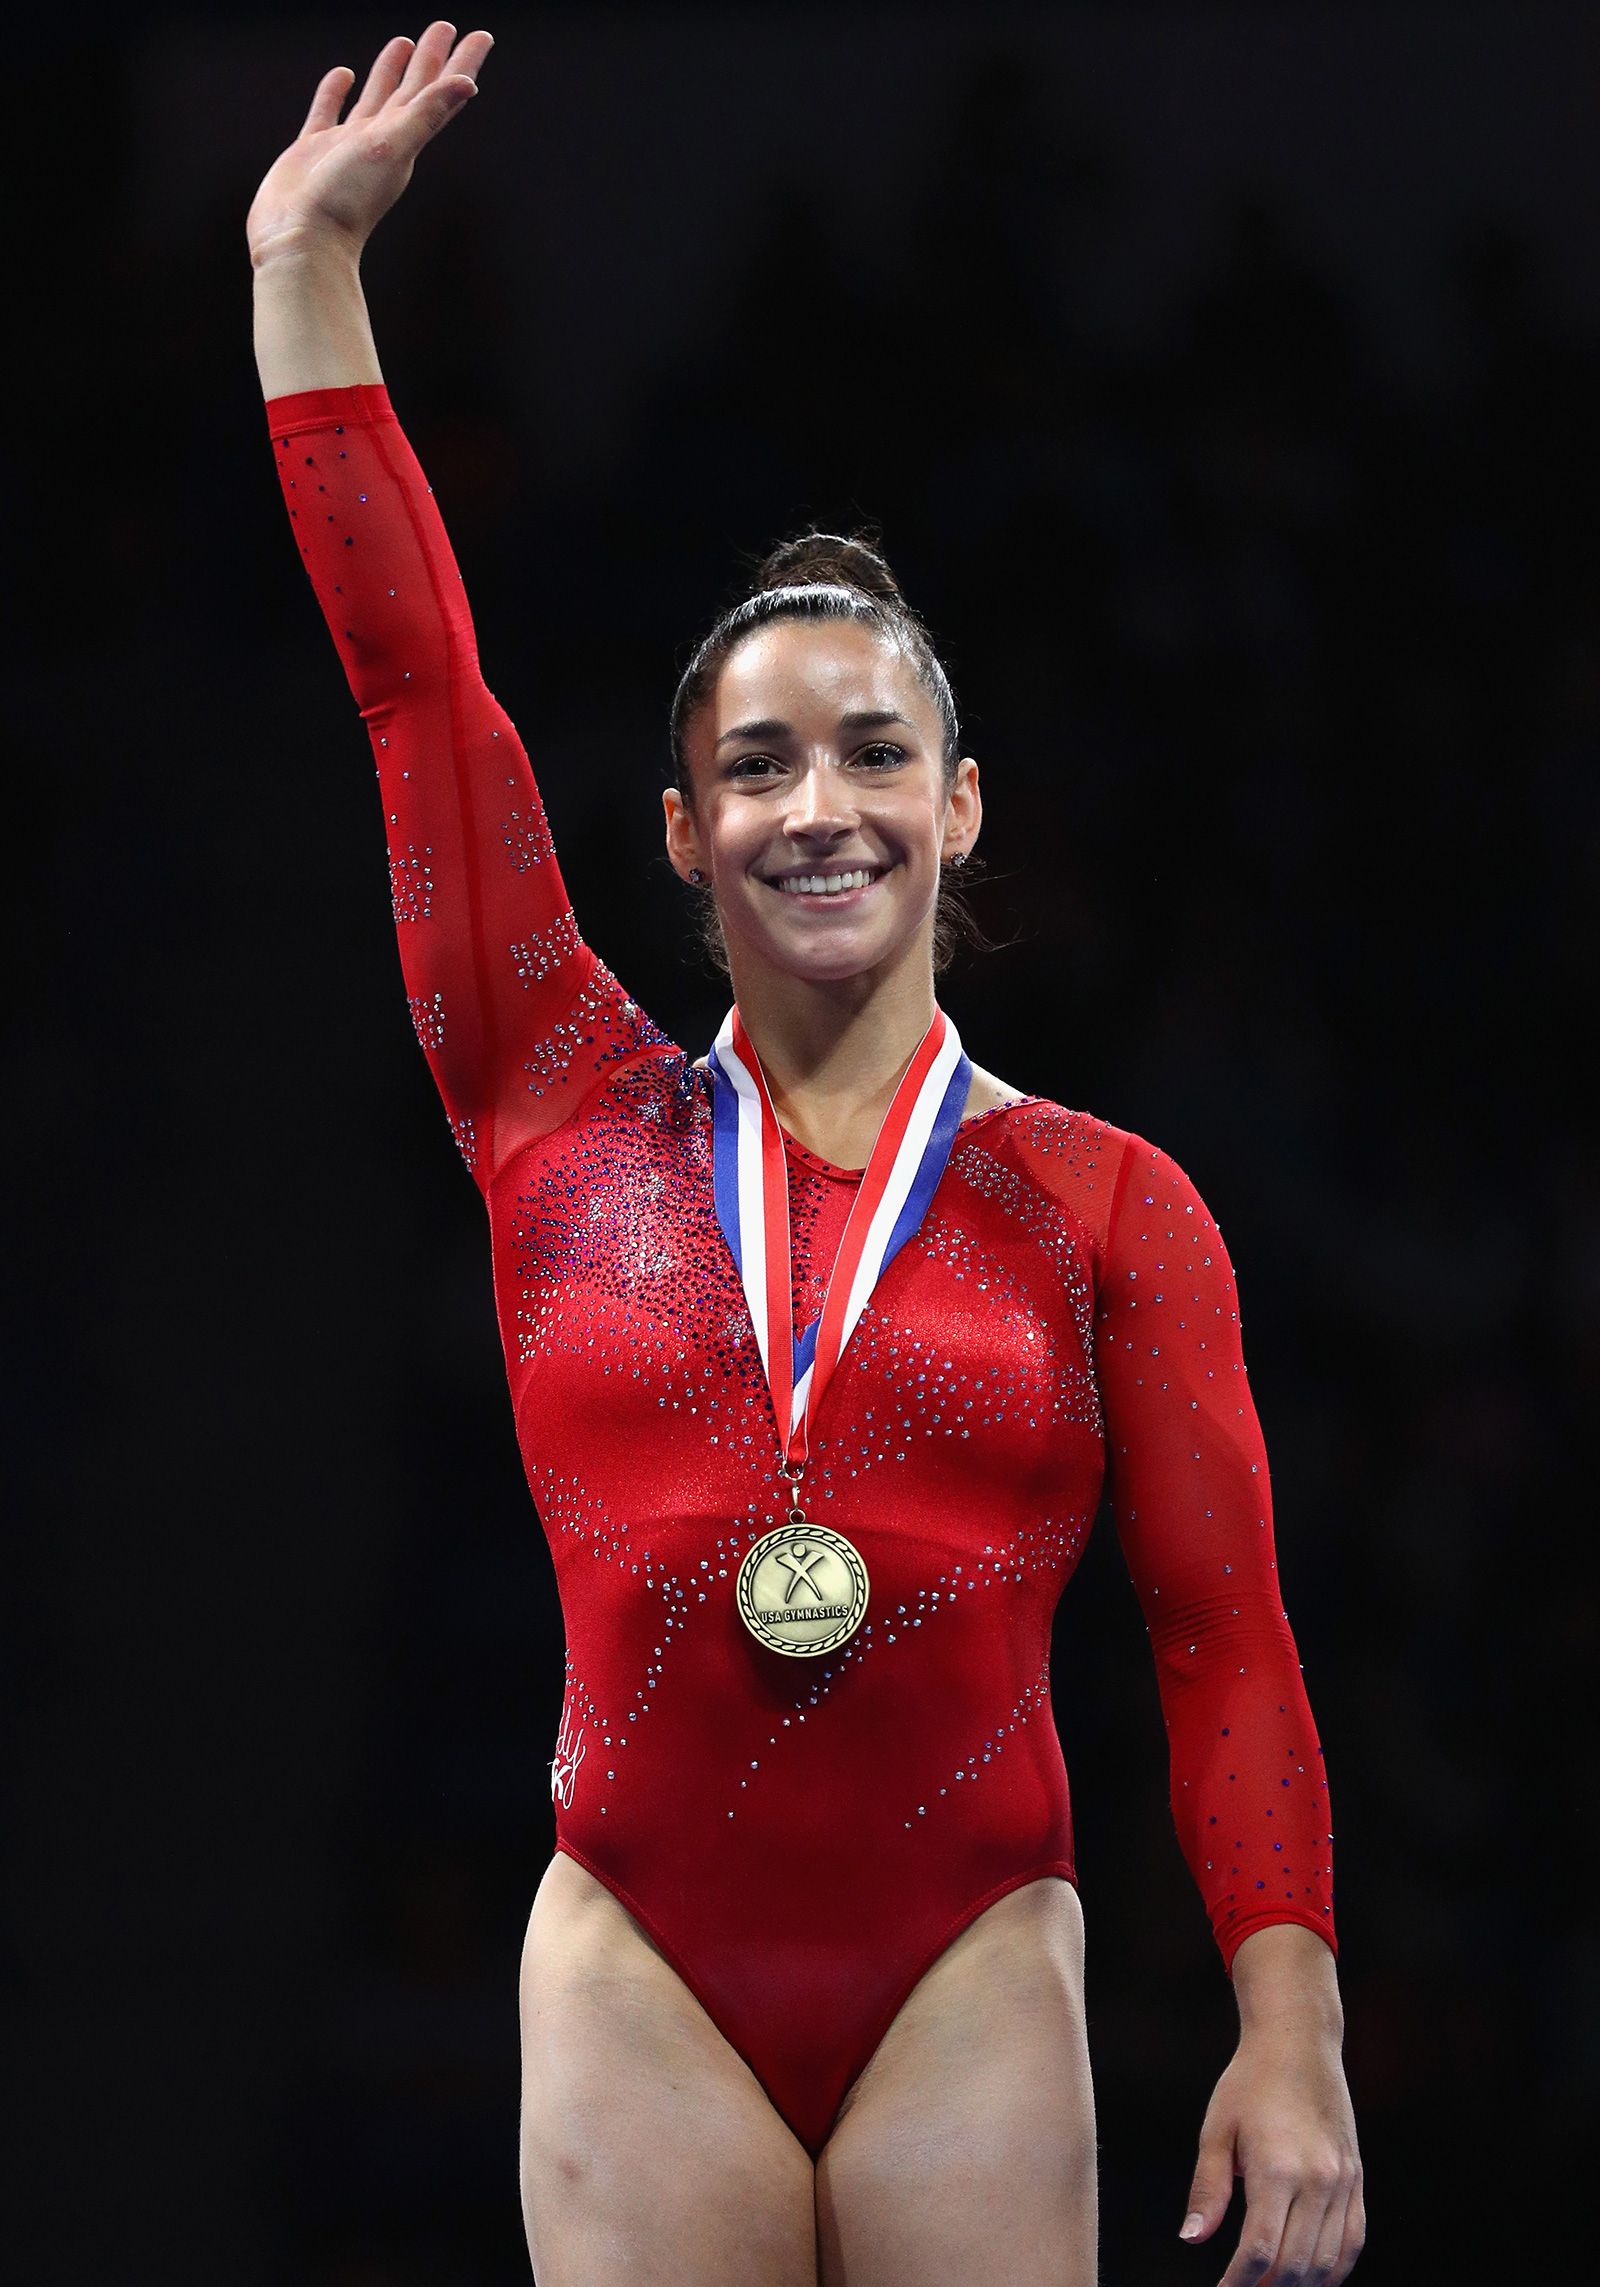 Aly Raisman Nude Photos 14